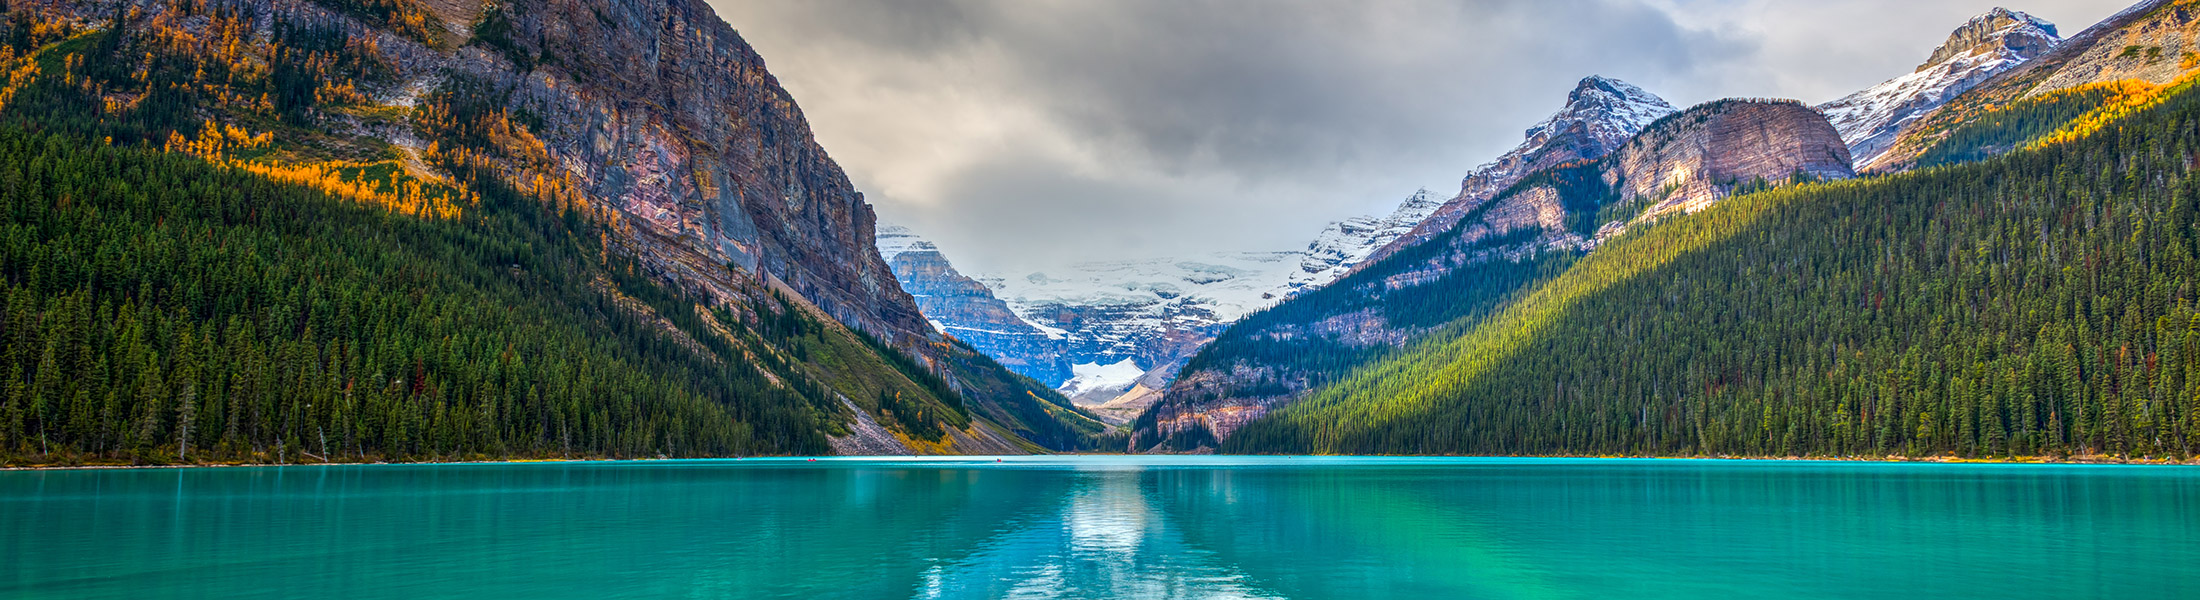 Turquoise water in a mountain lake in North America